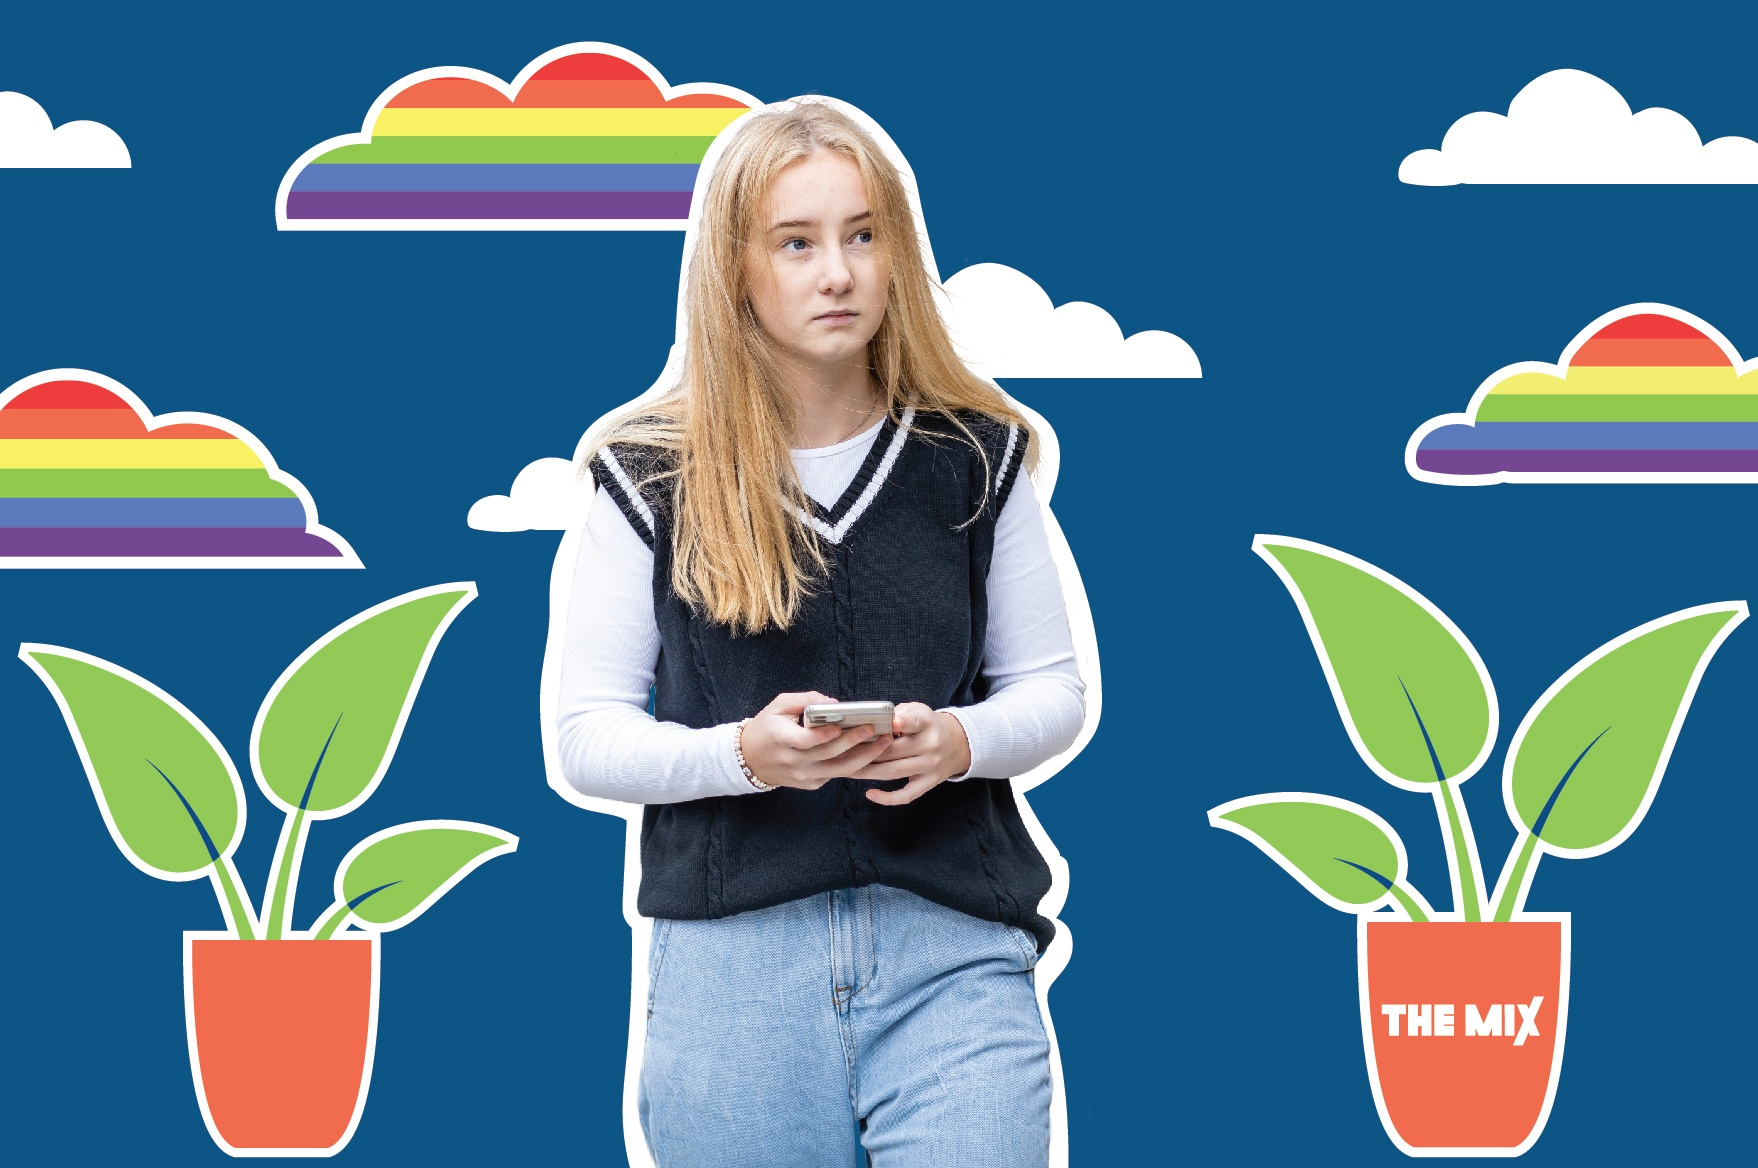 A young person is on their phone, with palnts and rainbow clouds in the background